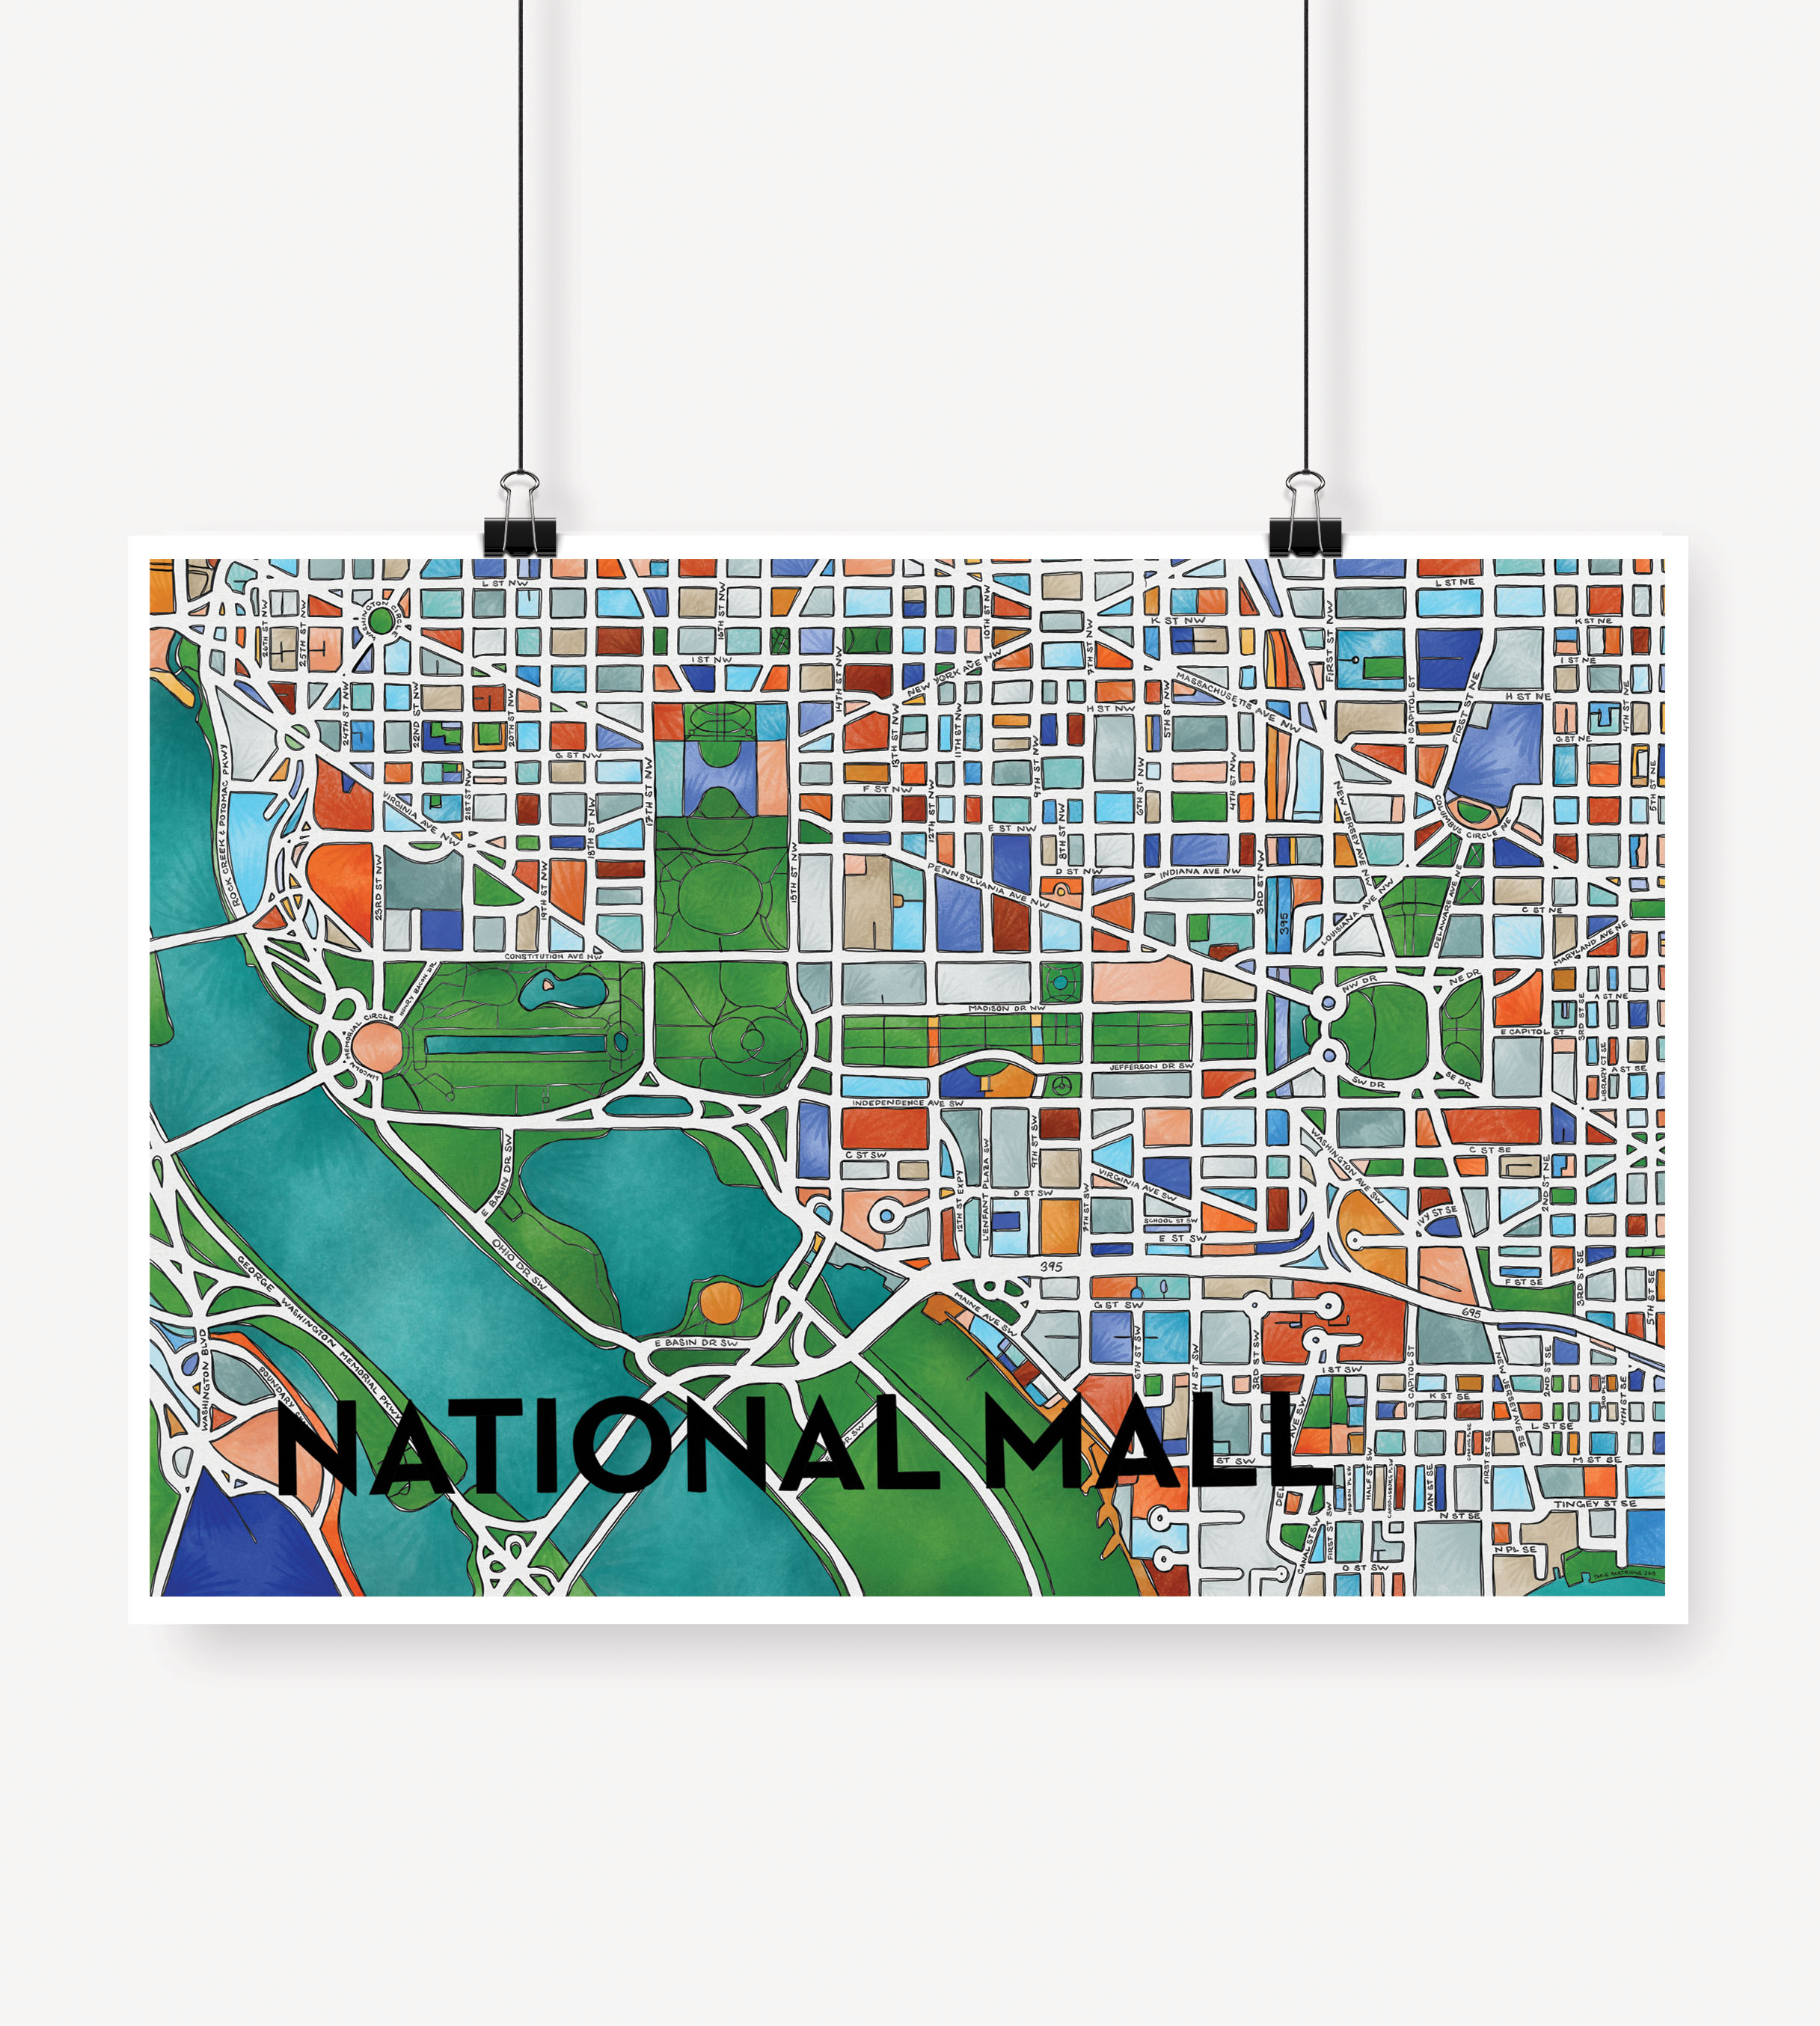 graphic about National Mall Map Printable named Cherry Blossom Artistic Countrywide Shopping mall Print